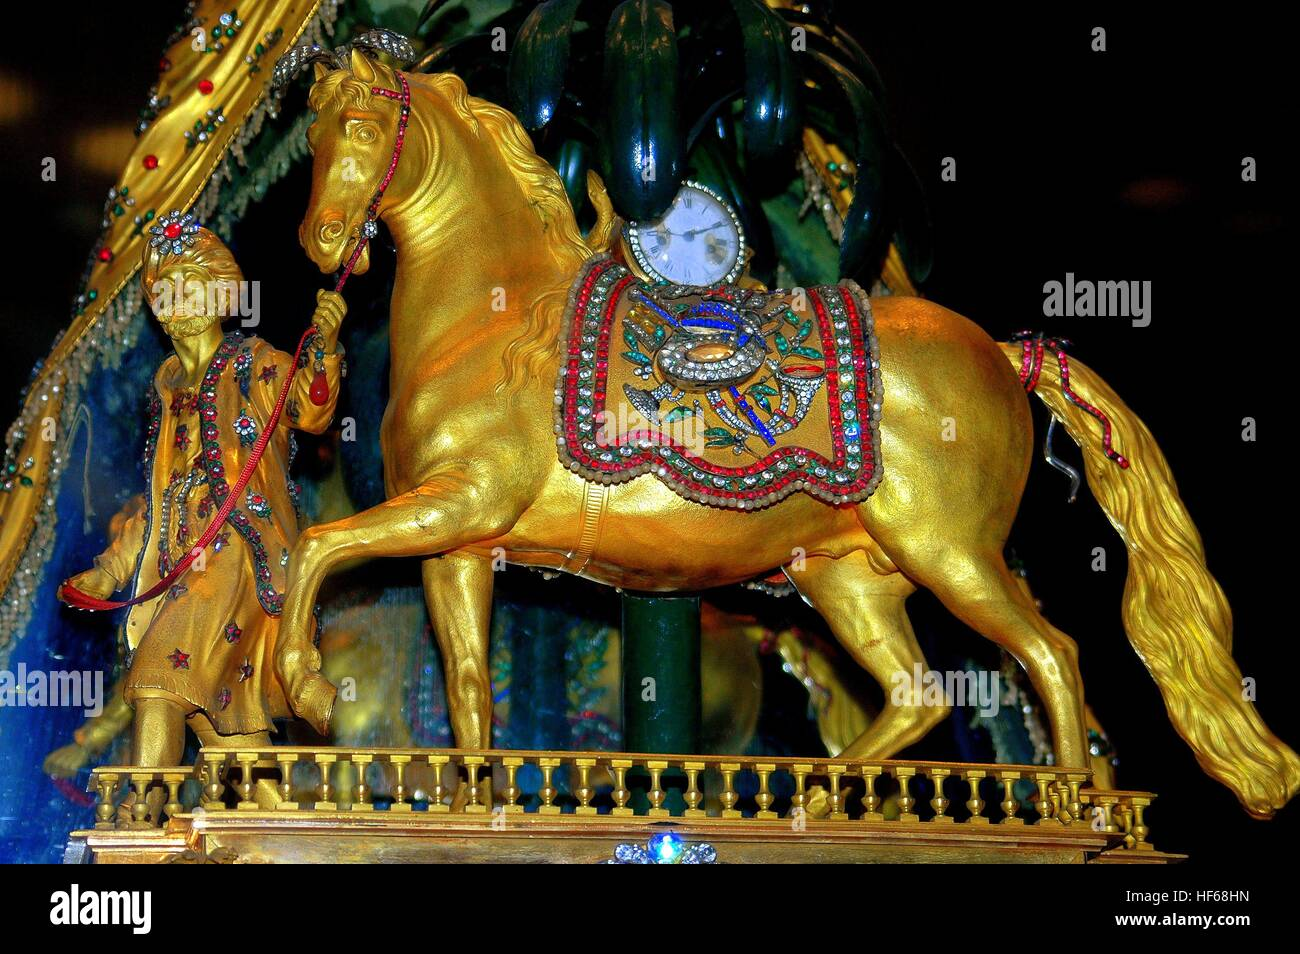 Beijing, China - May 2, 2005:  Gilded horse is one of the treasures on display in the Hall of Clocks Museum of the - Stock Image